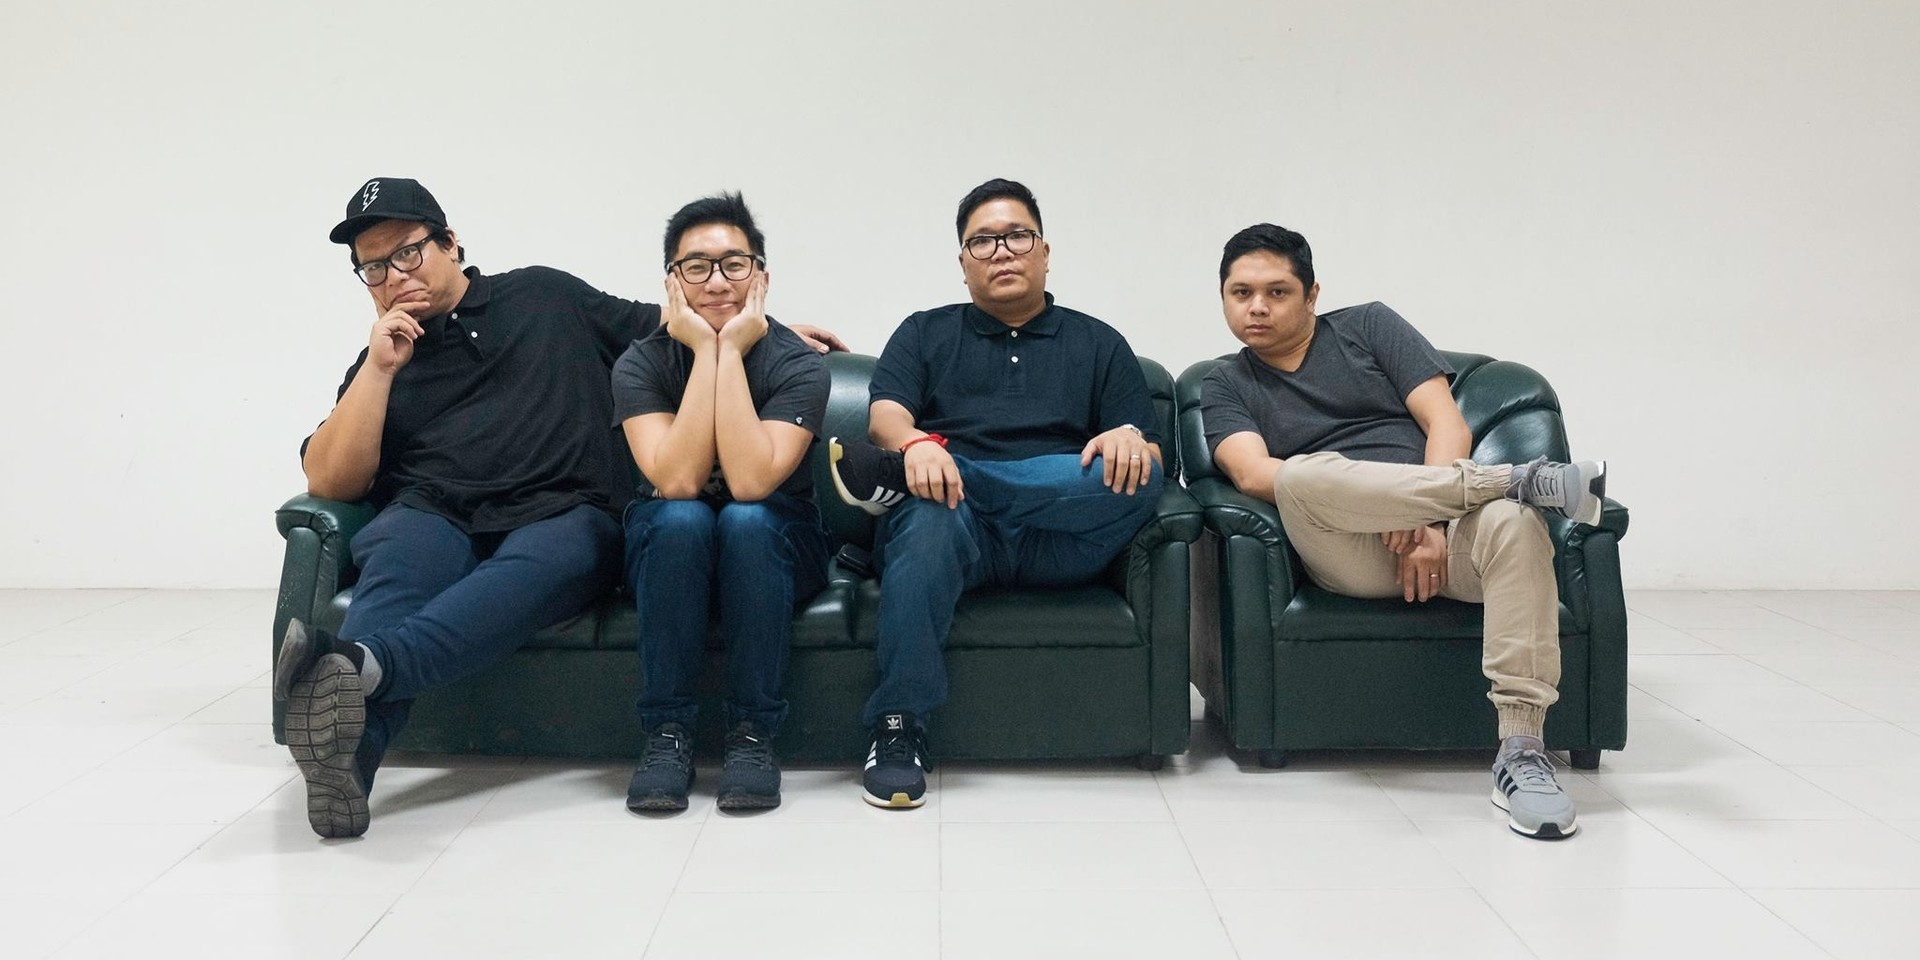 """We've been secretly recording songs during quarantine"": The Itchyworms on new single 'The Silence' – listen"